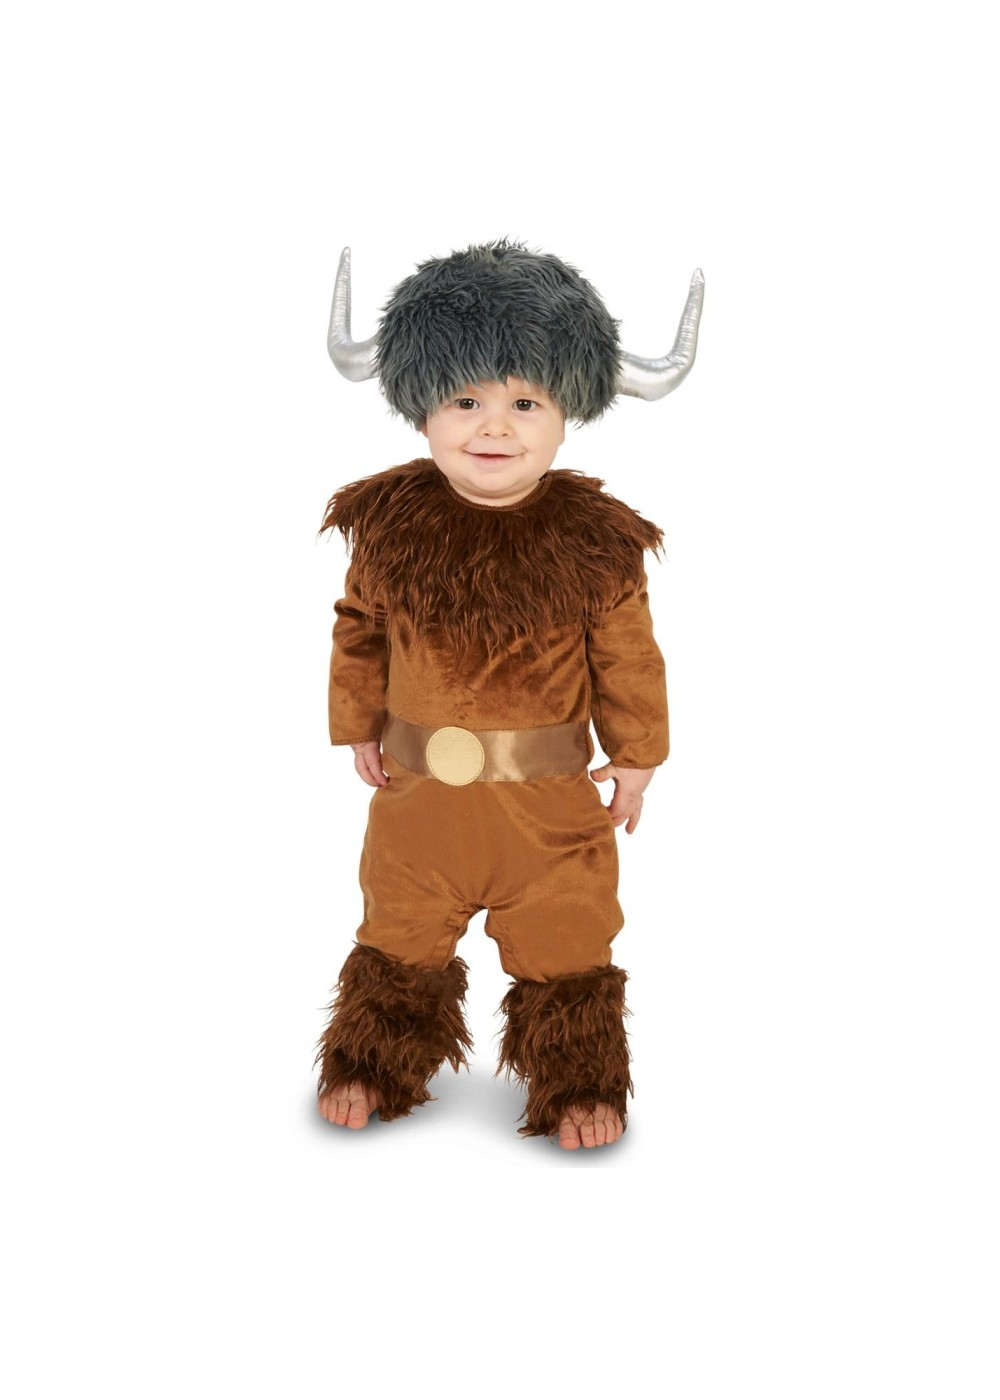 Daring Viking Baby Boys Costume